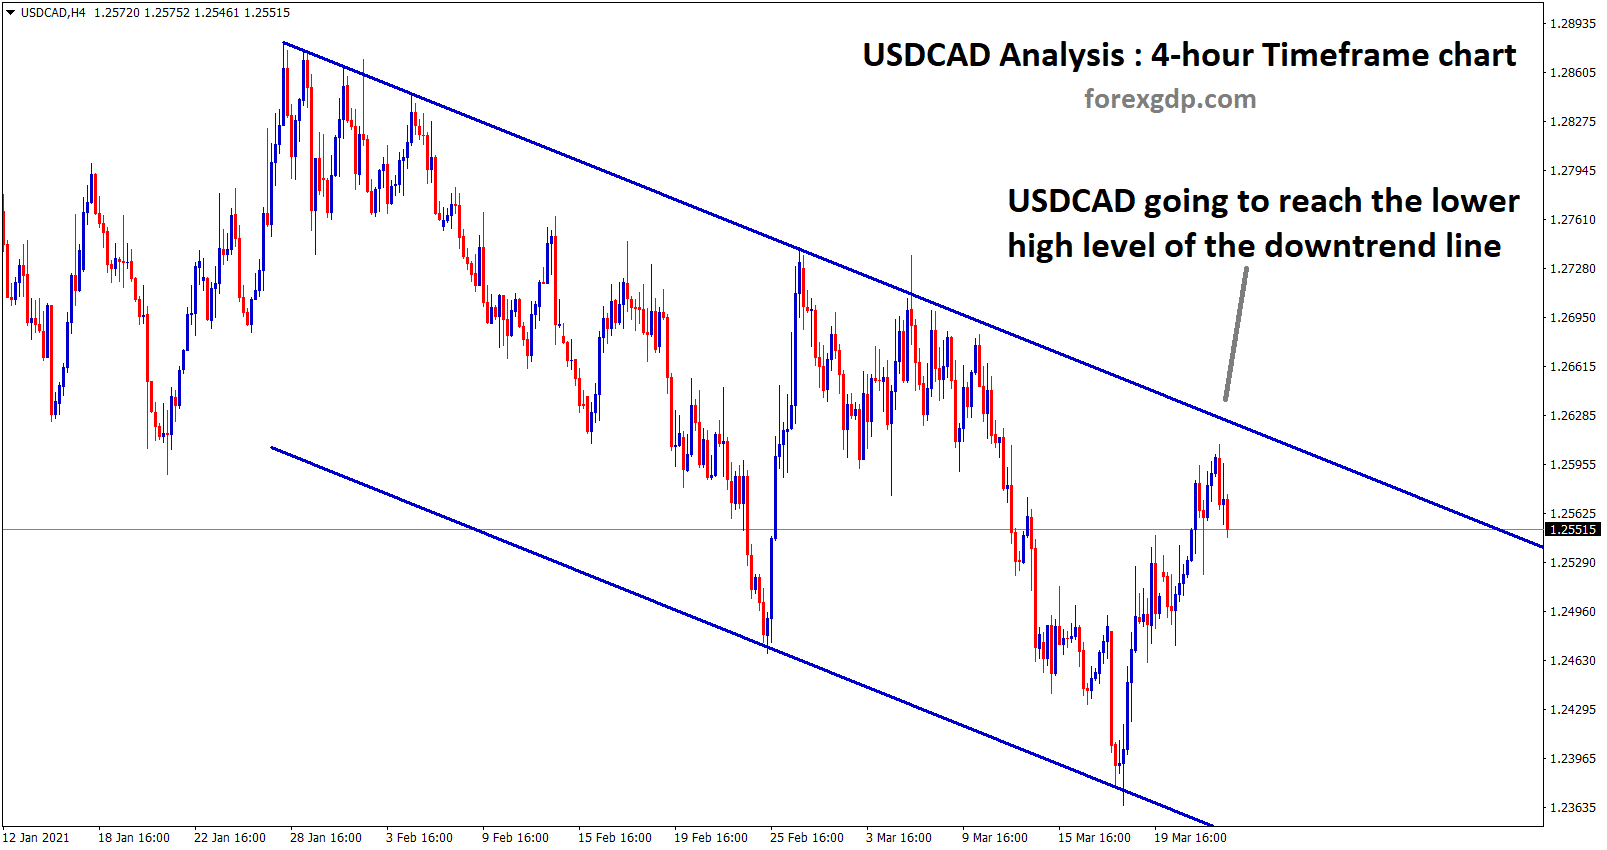 usdcad going to reach the lower high of the downtrend line